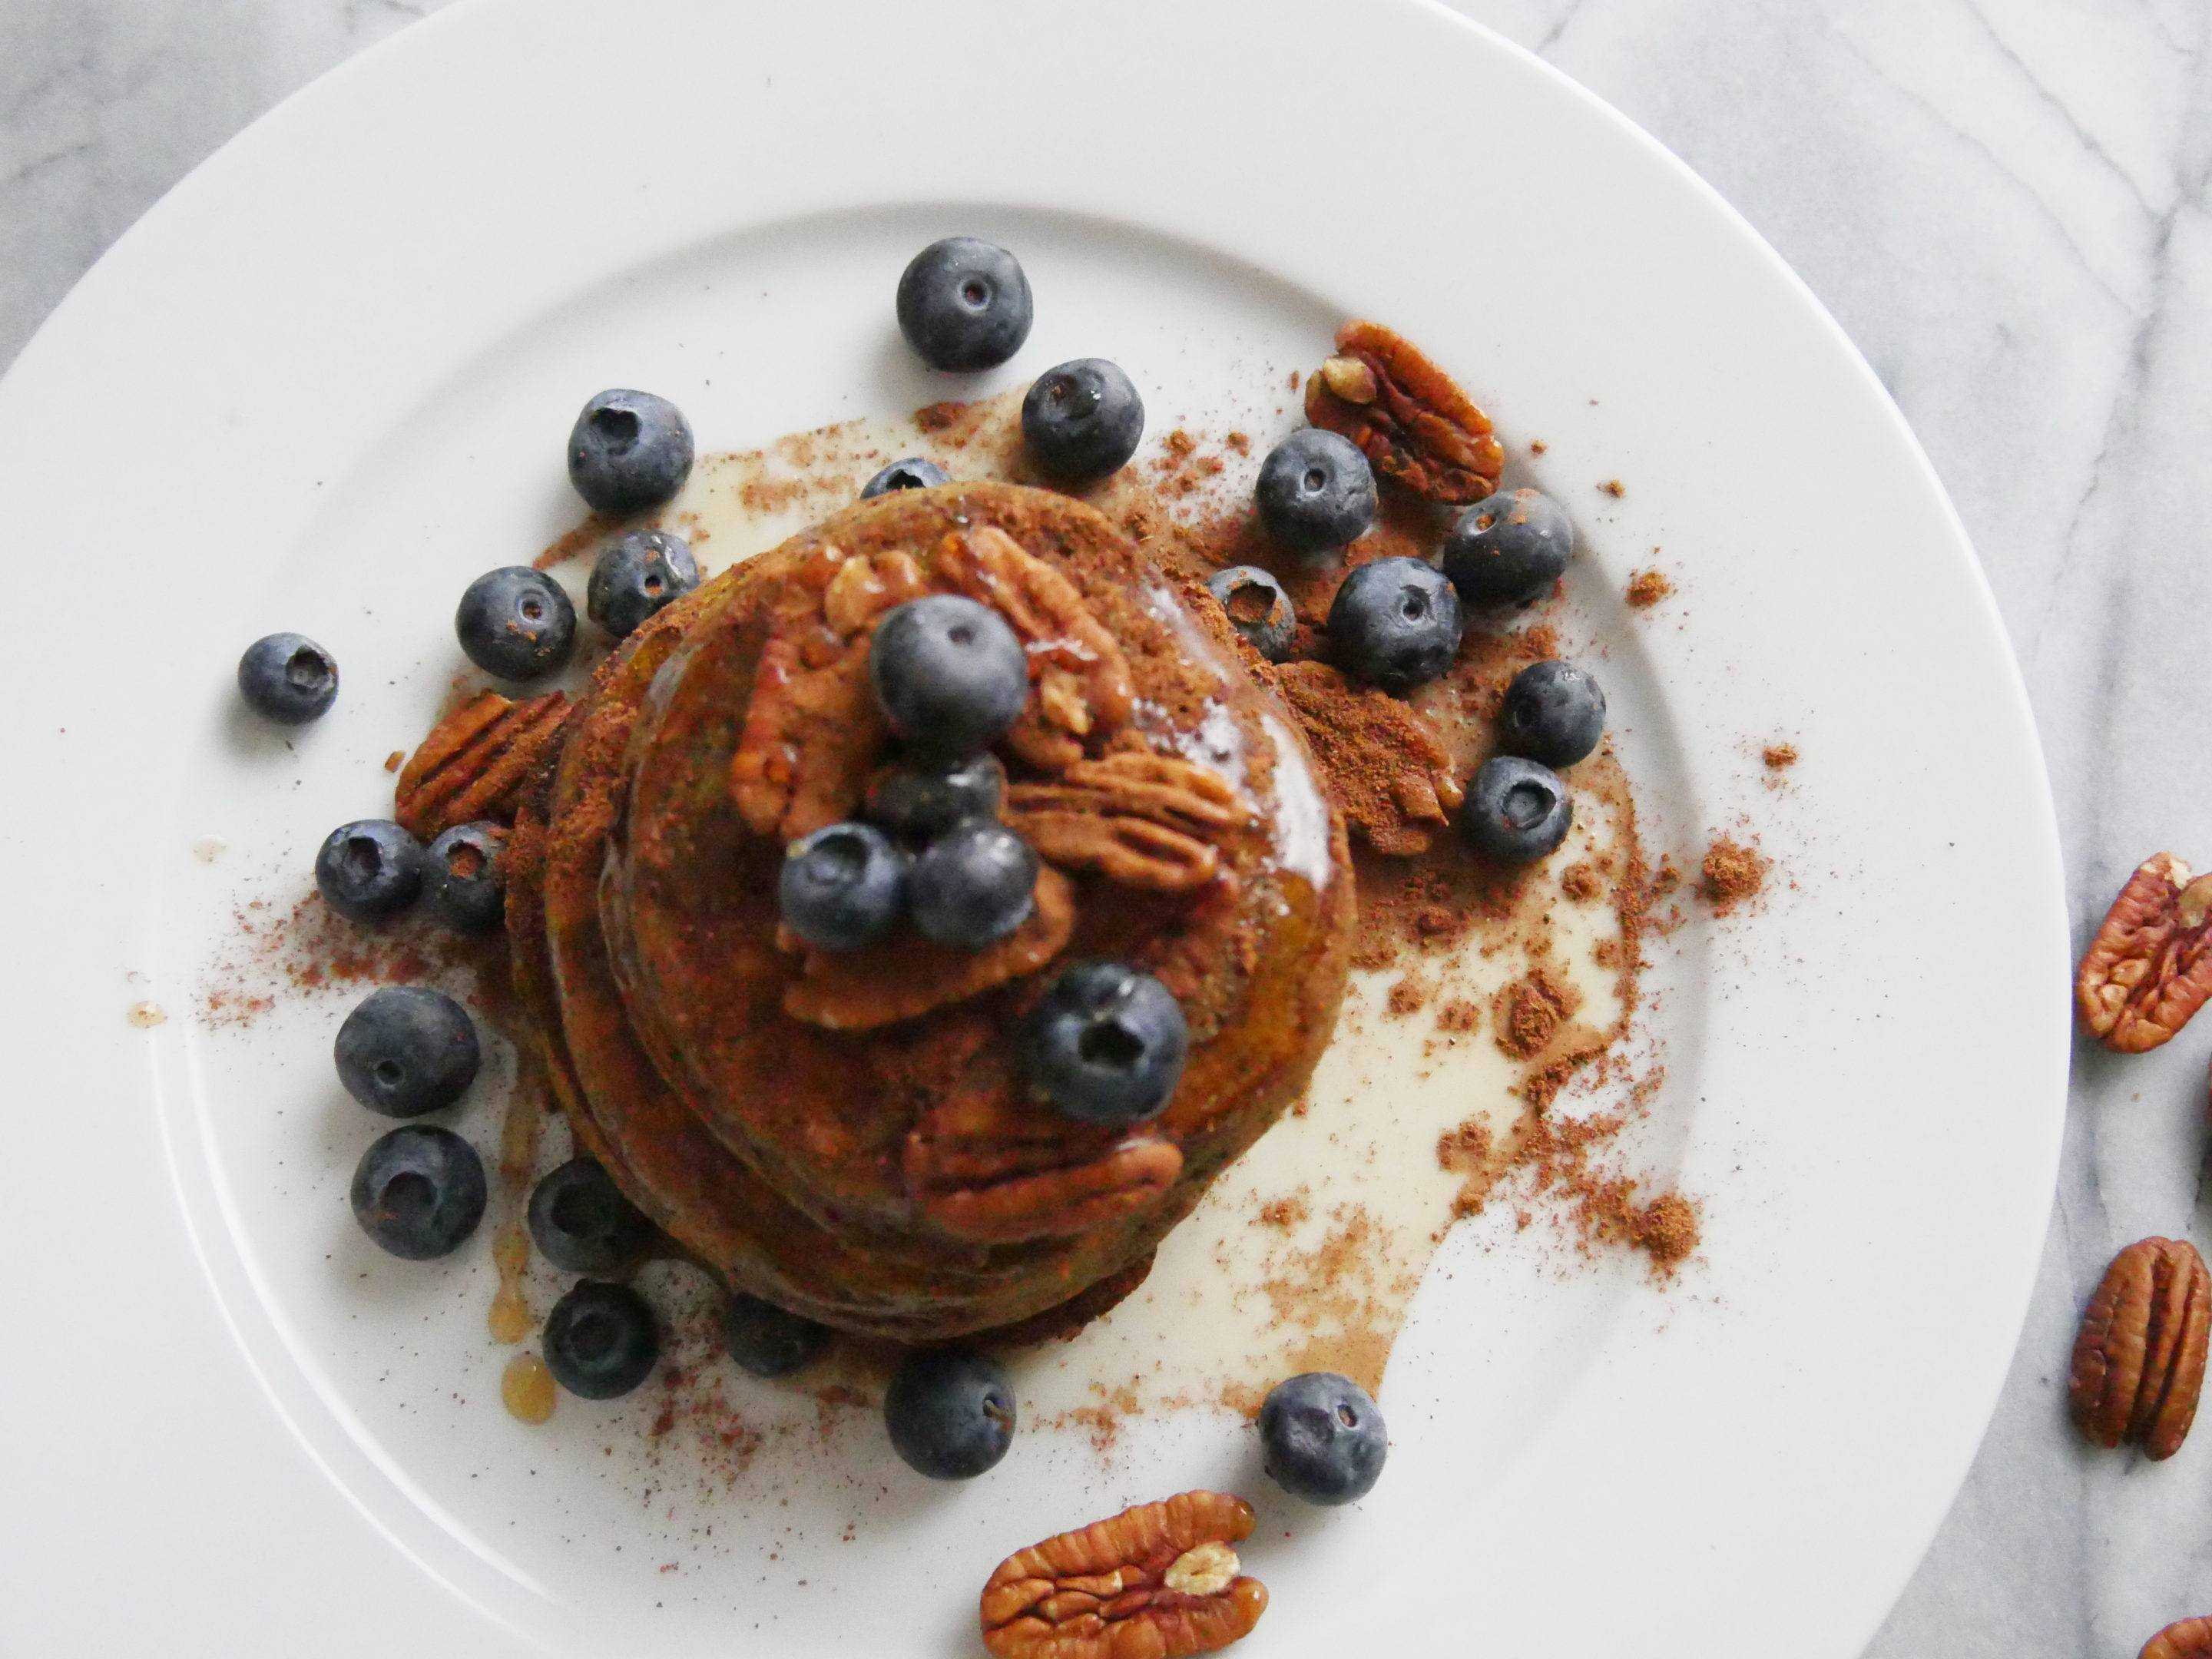 THIS PUMPKIN SPICE PROTEIN PANCAKE RECIPE FROM HEALTHY CHEF LILY KUNIN IS A SATURDAY MORNING GAME-CHANGER